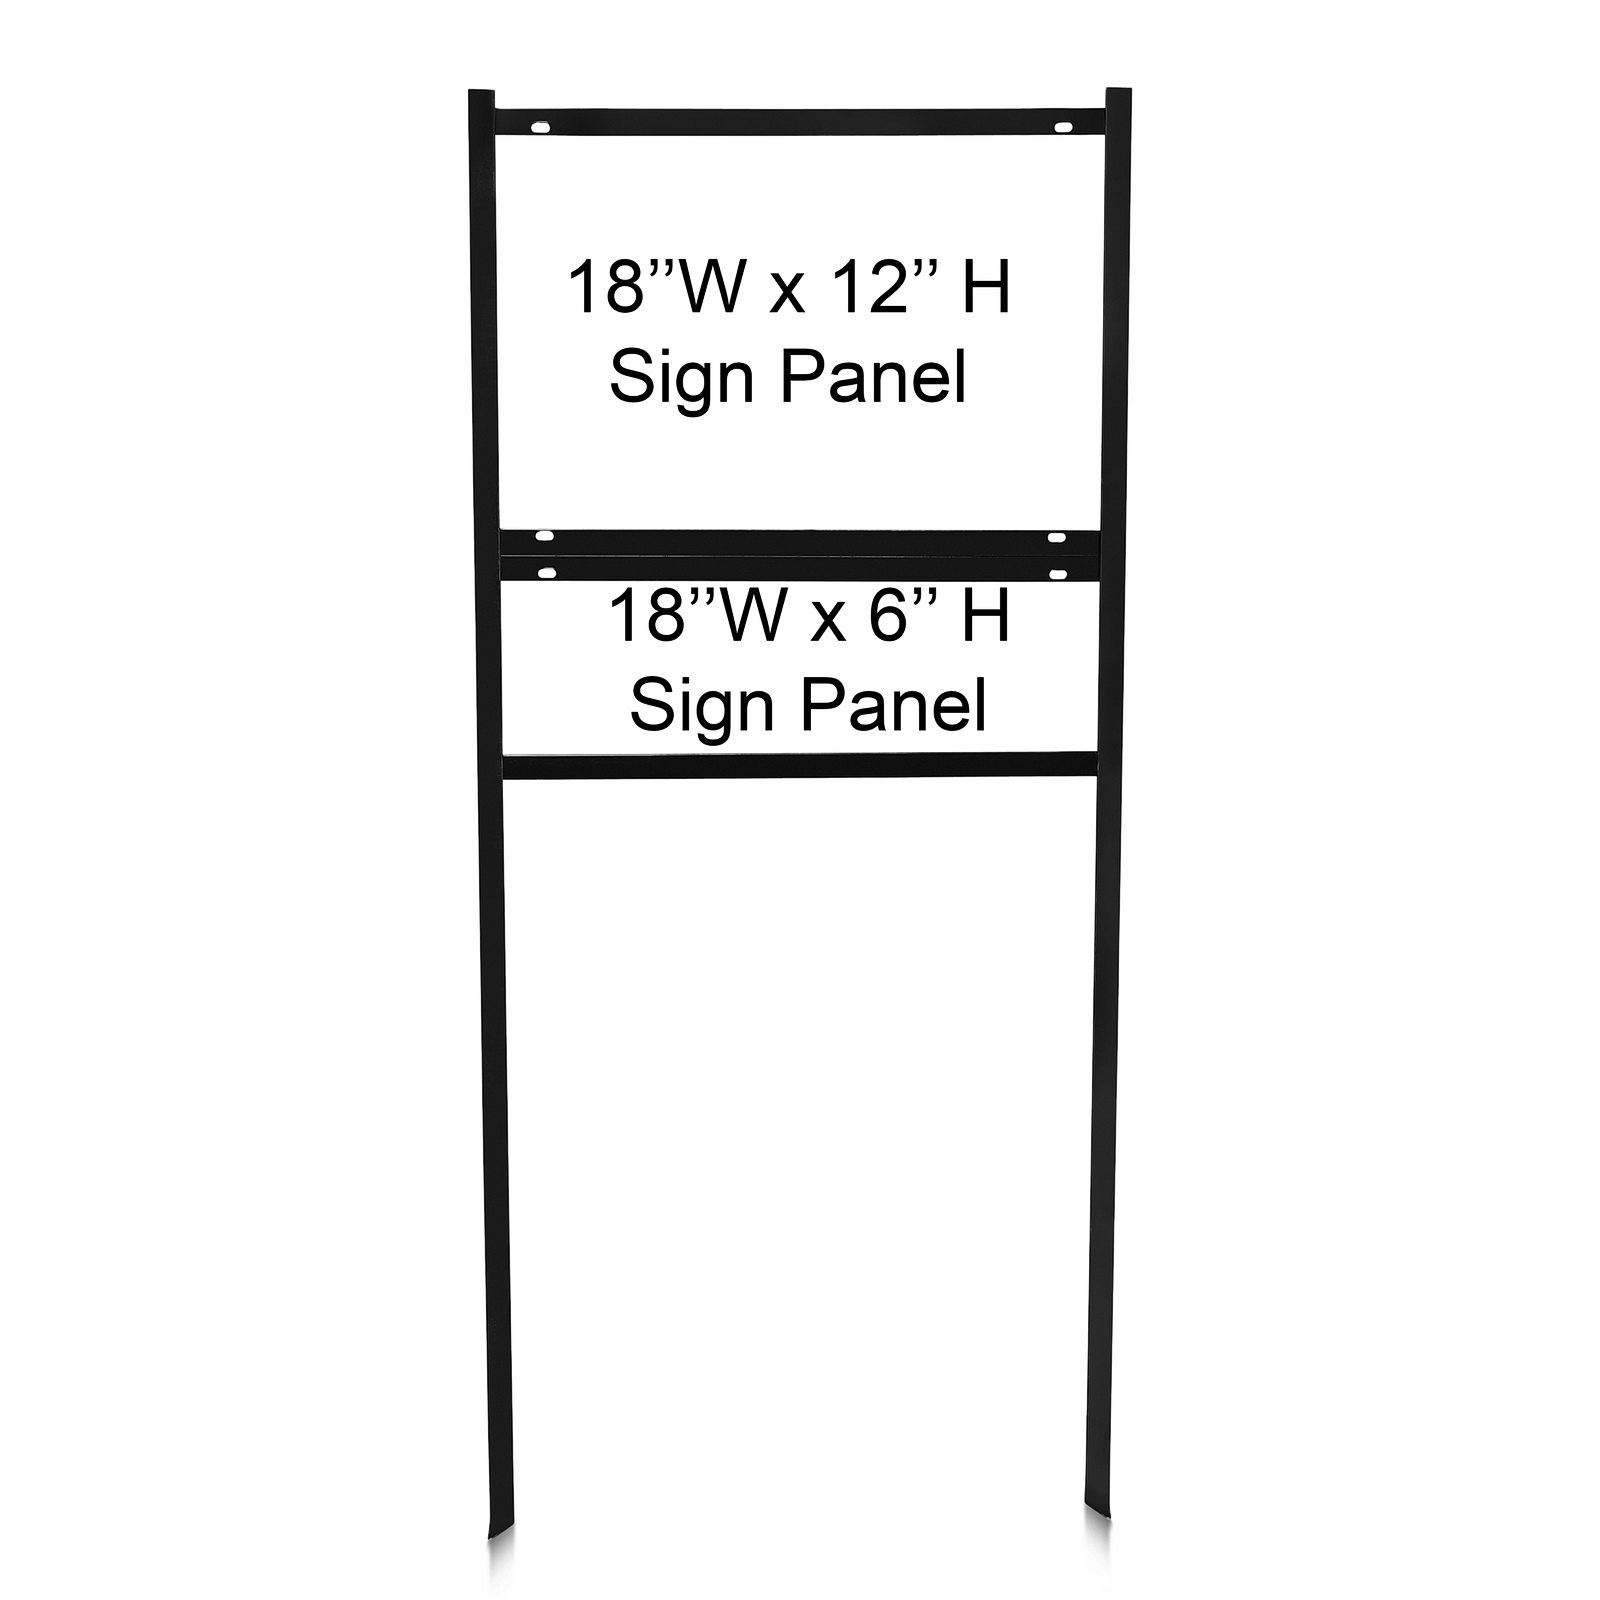 18'' Wide x 12'' Tall Black Single Rider Slide-in/Bolt-in Real Estate Sign Panel Frame (accepts up to 1/8'' thickness)